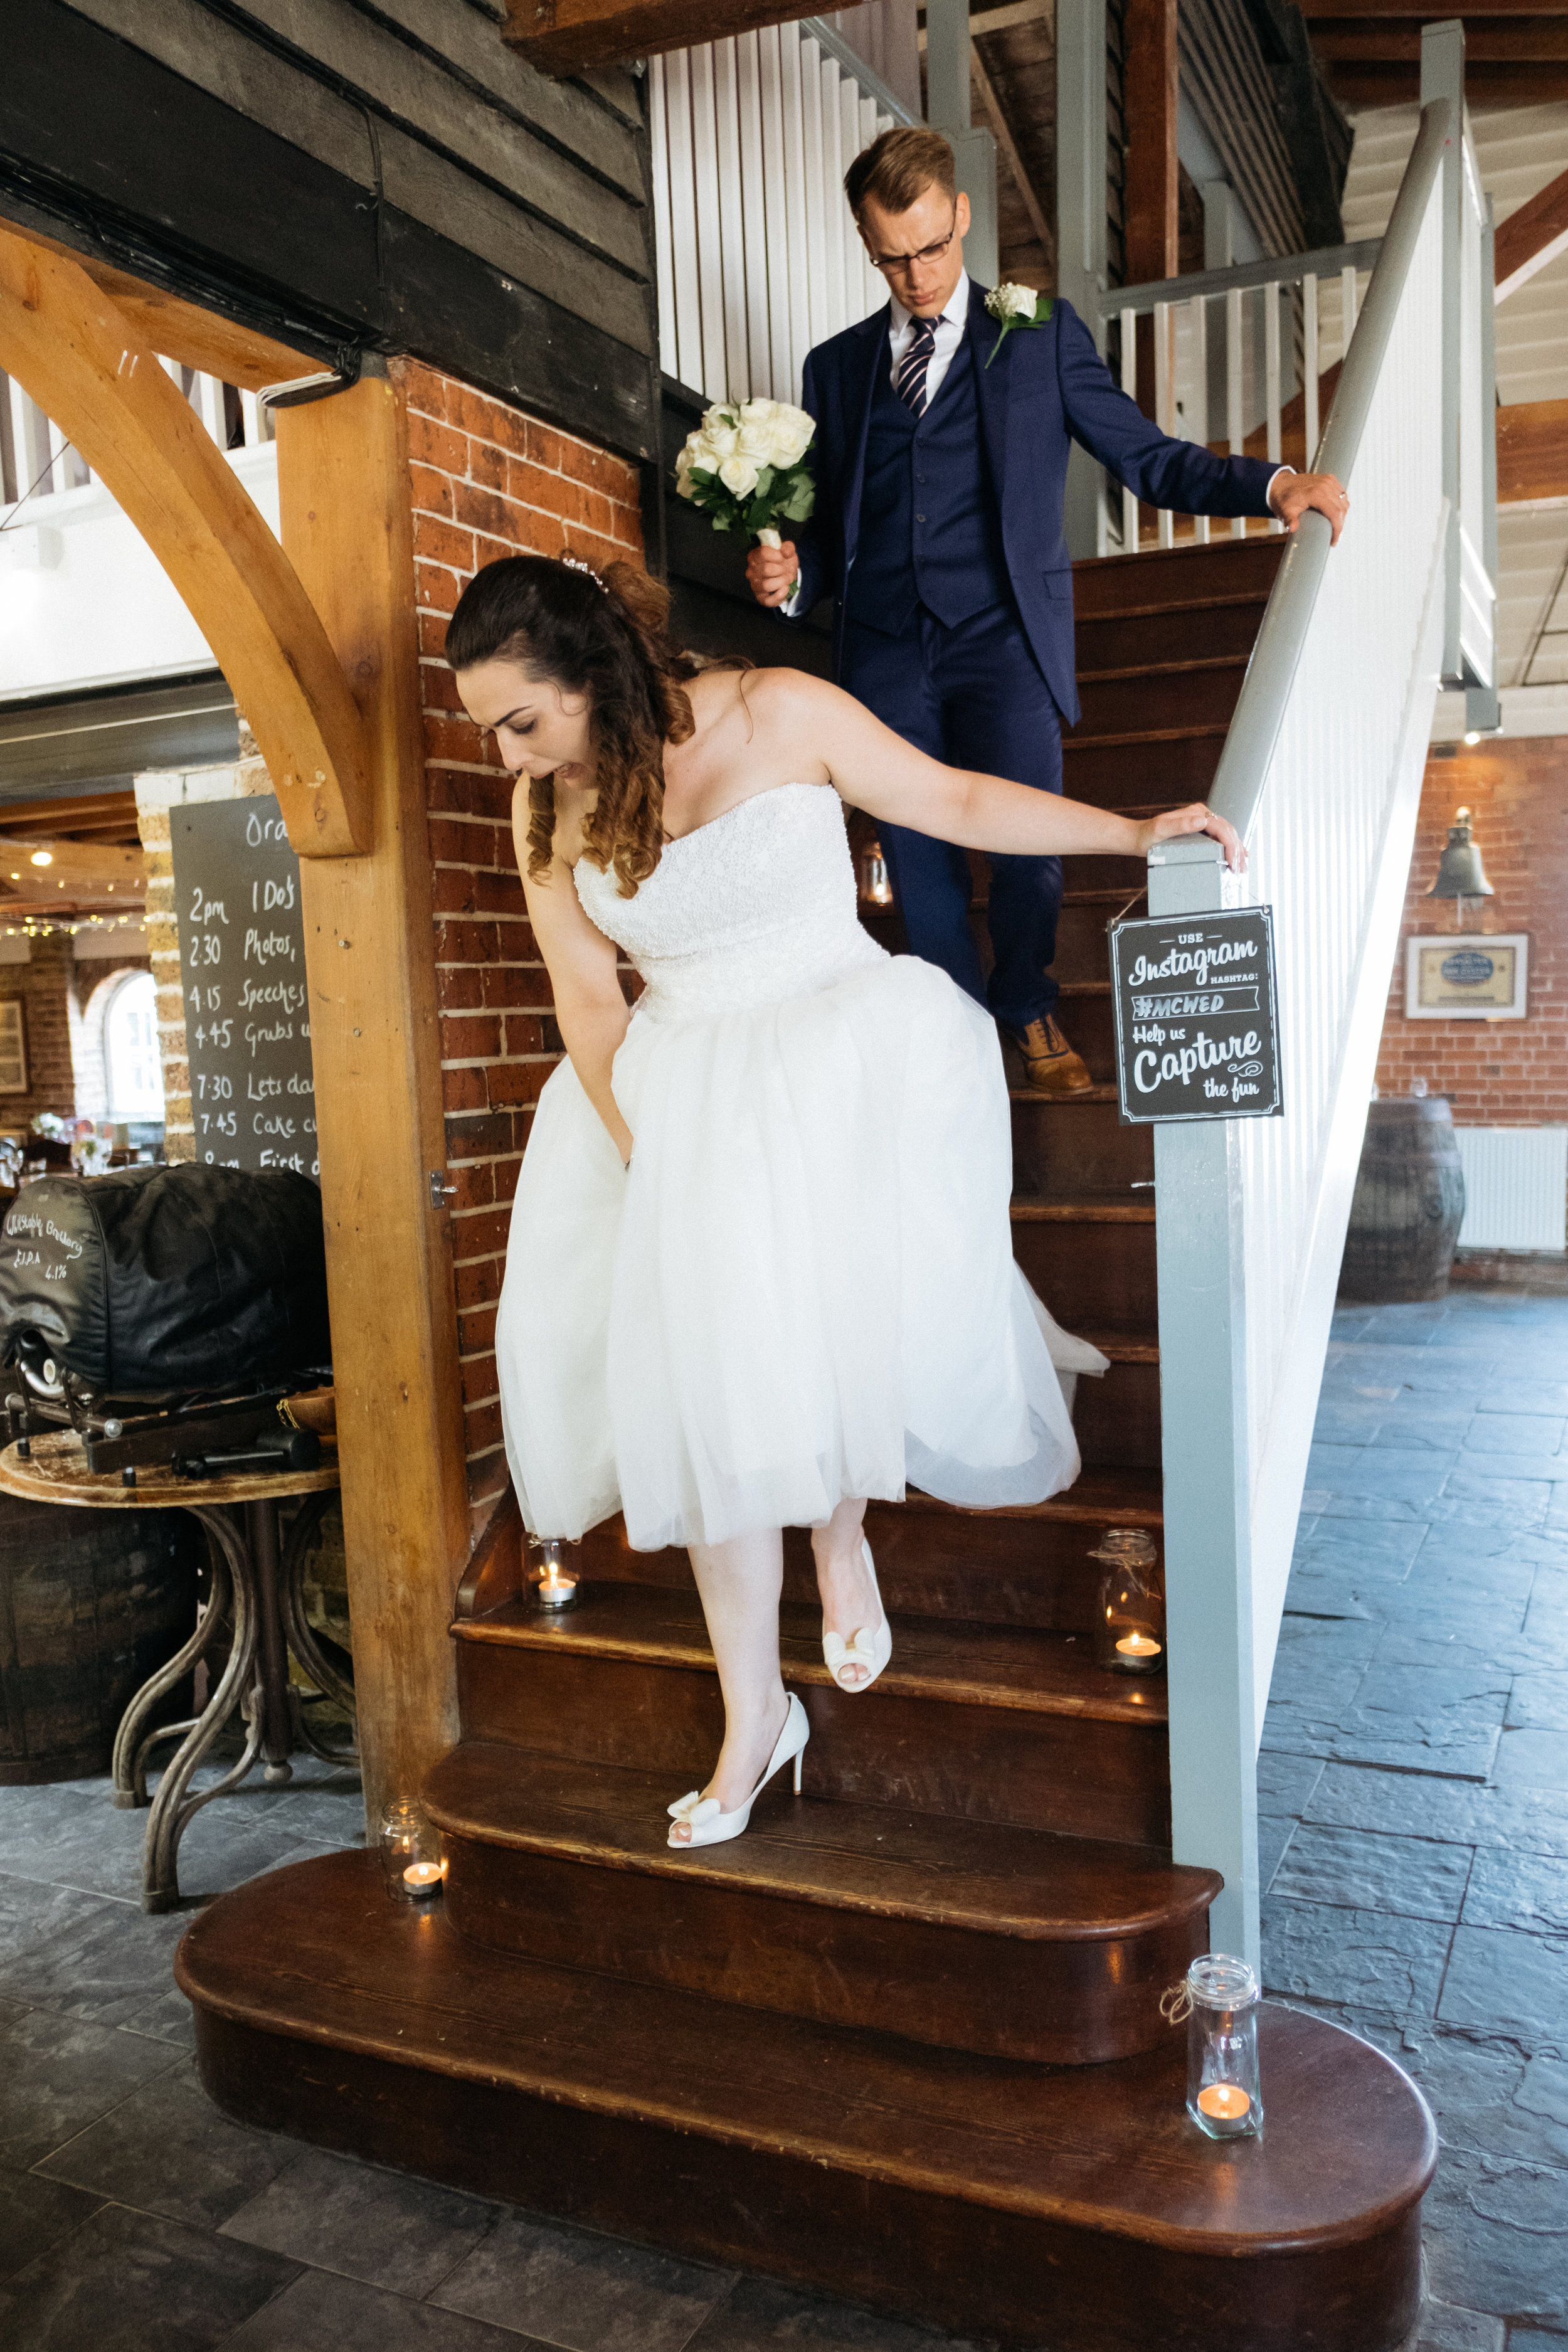 Just married at East Quay wedding venue